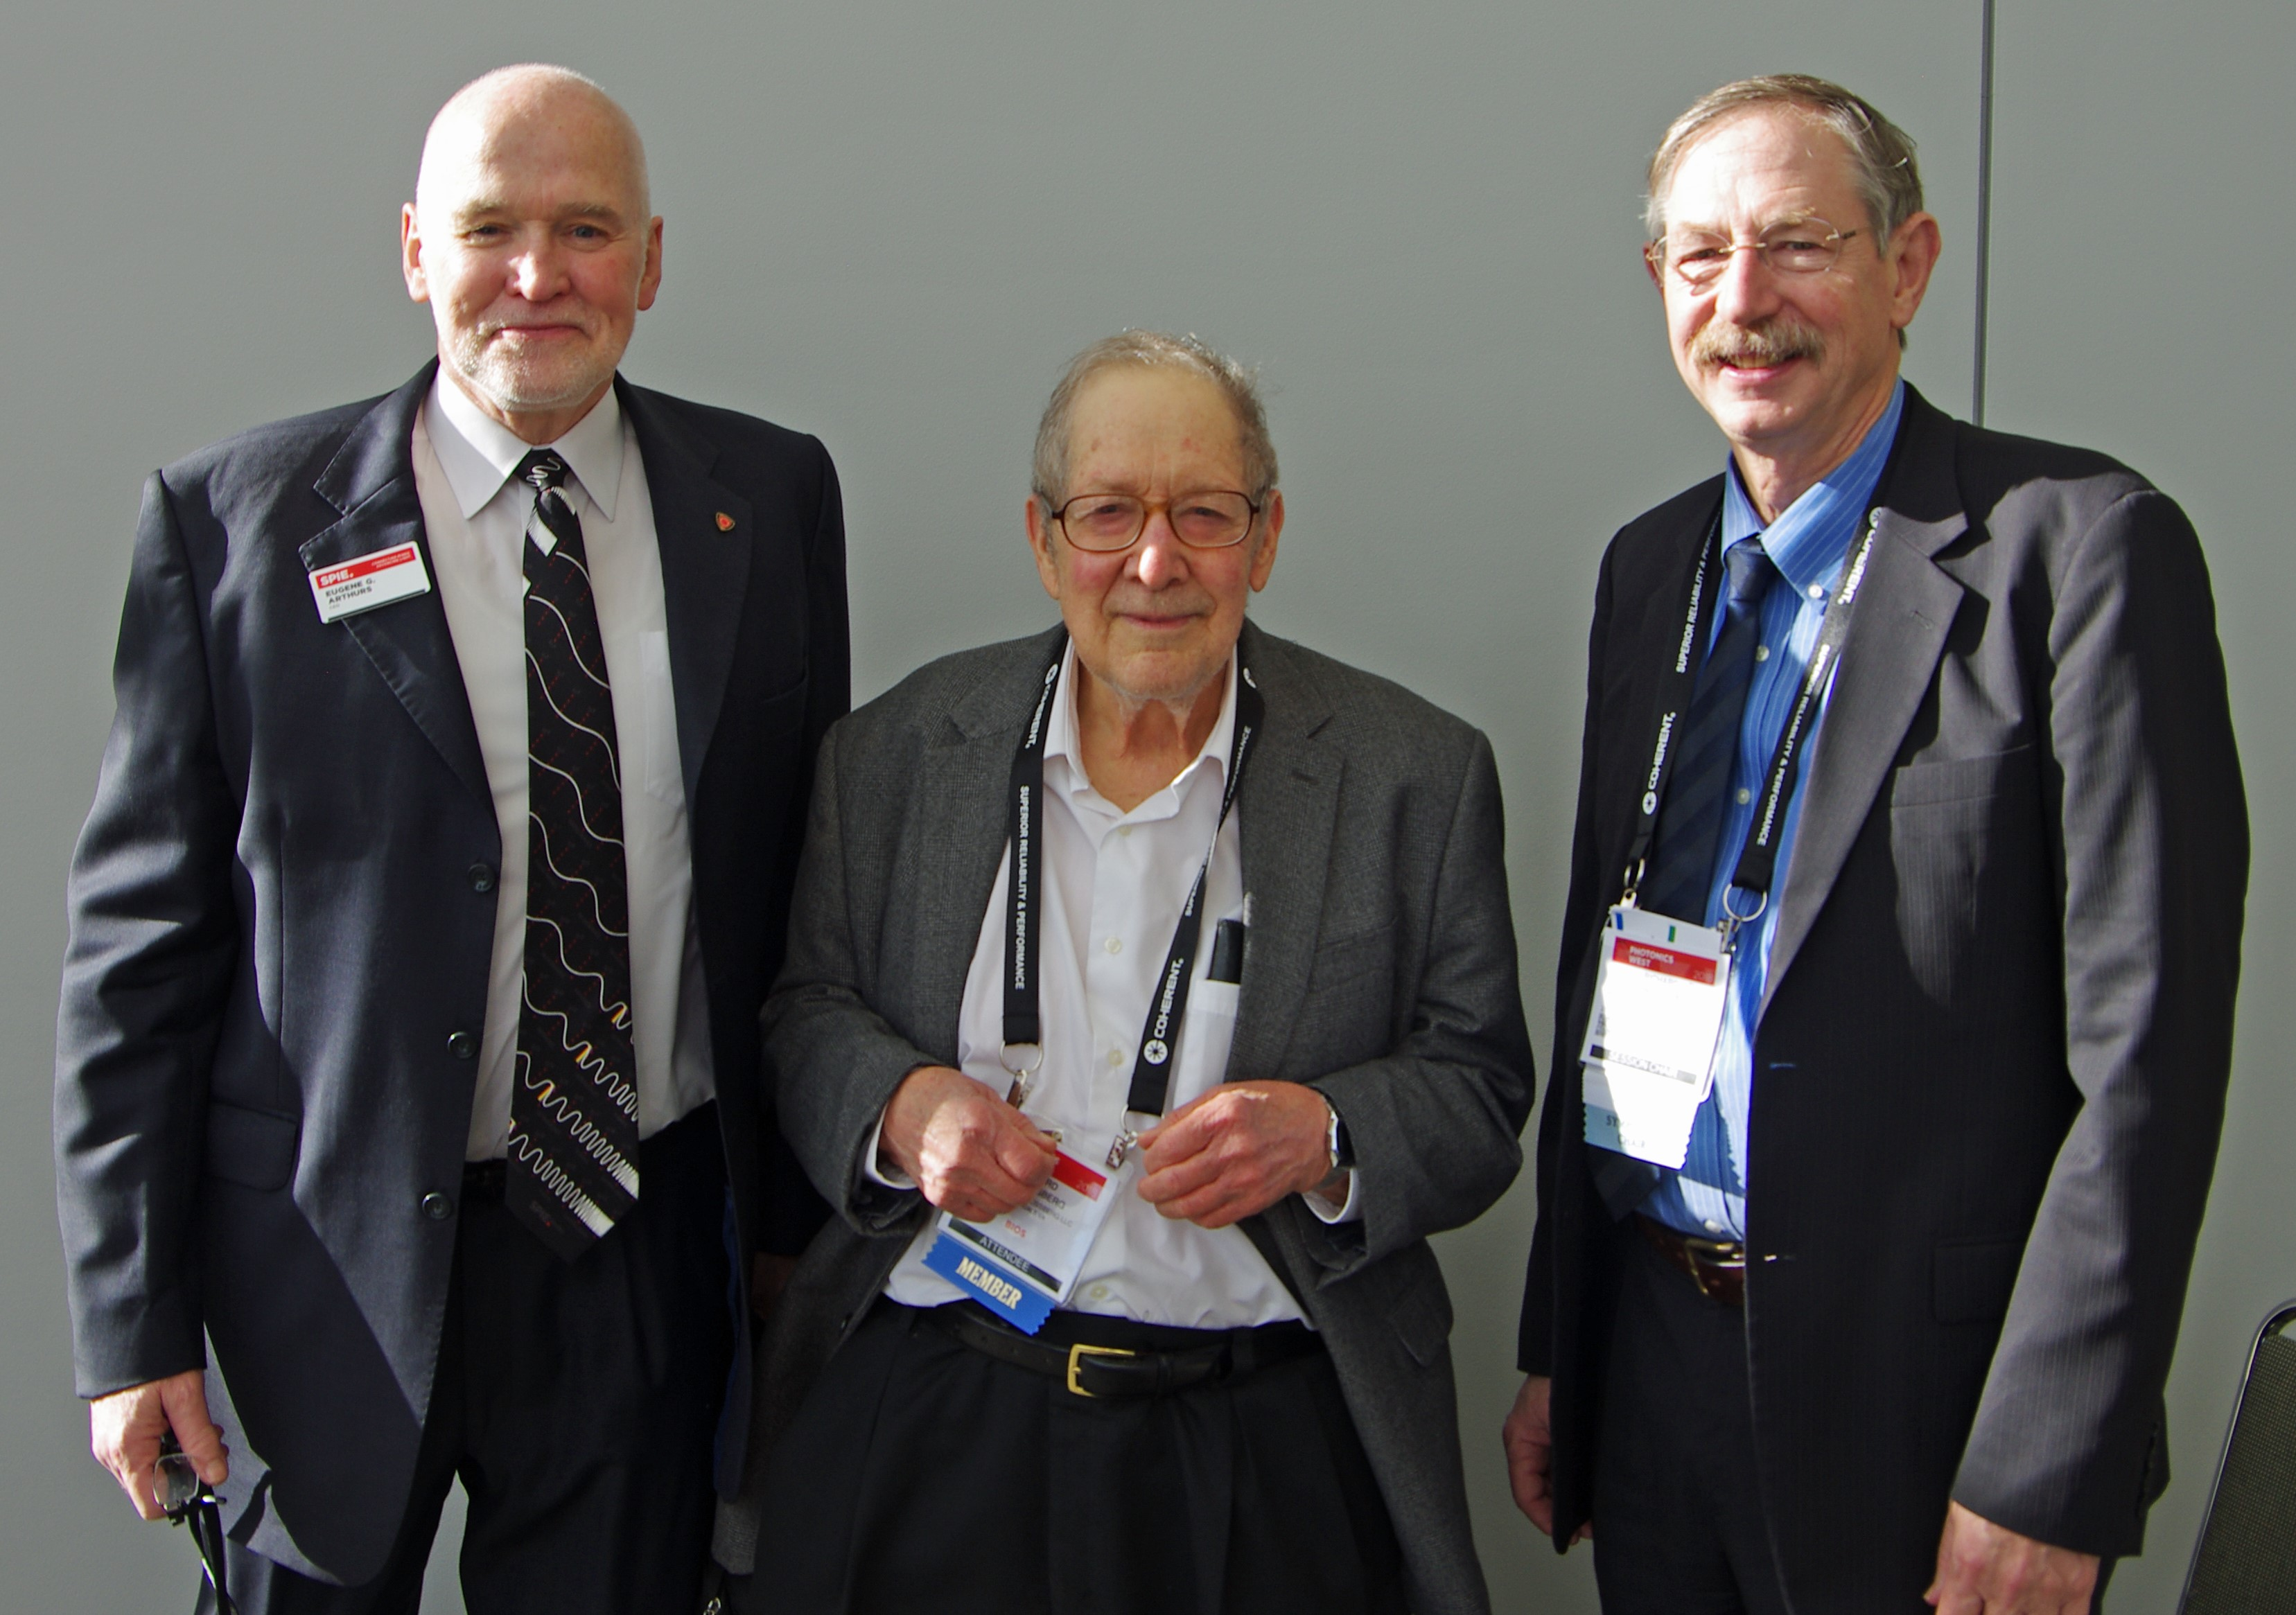 Eugene Arthurs, Howard Schlossberg, and R. Rox Anderson at SPIE Photonics West 2018